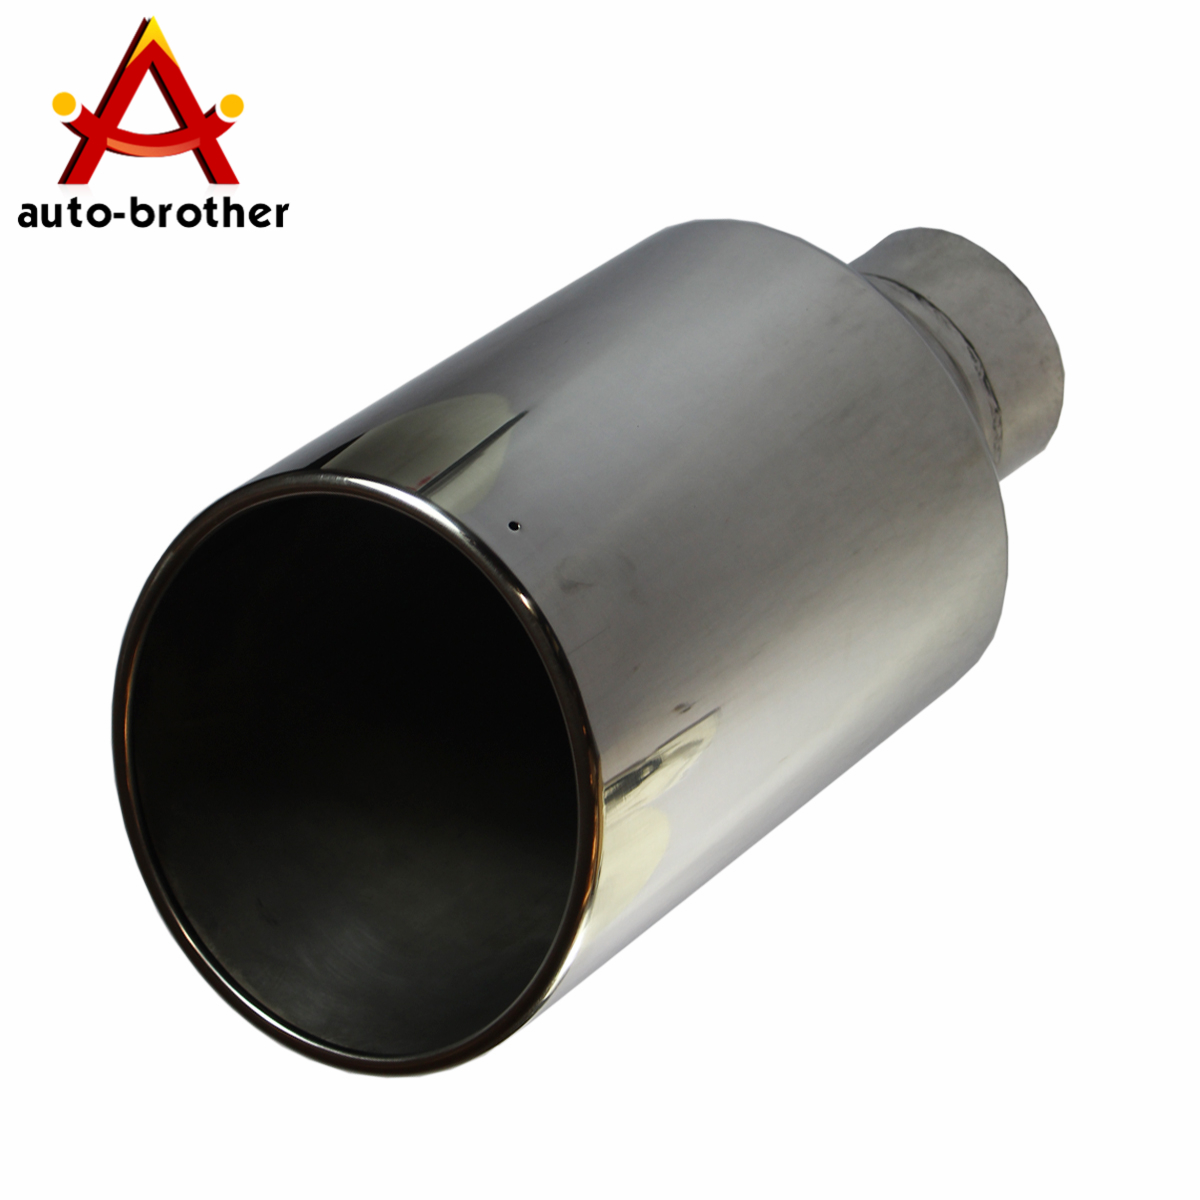 "Exhaust Tip Tail Pipe 15/"" inch Long 4/"" Inlet 8/"" Outlet S//S Rolled End Angle Cut"